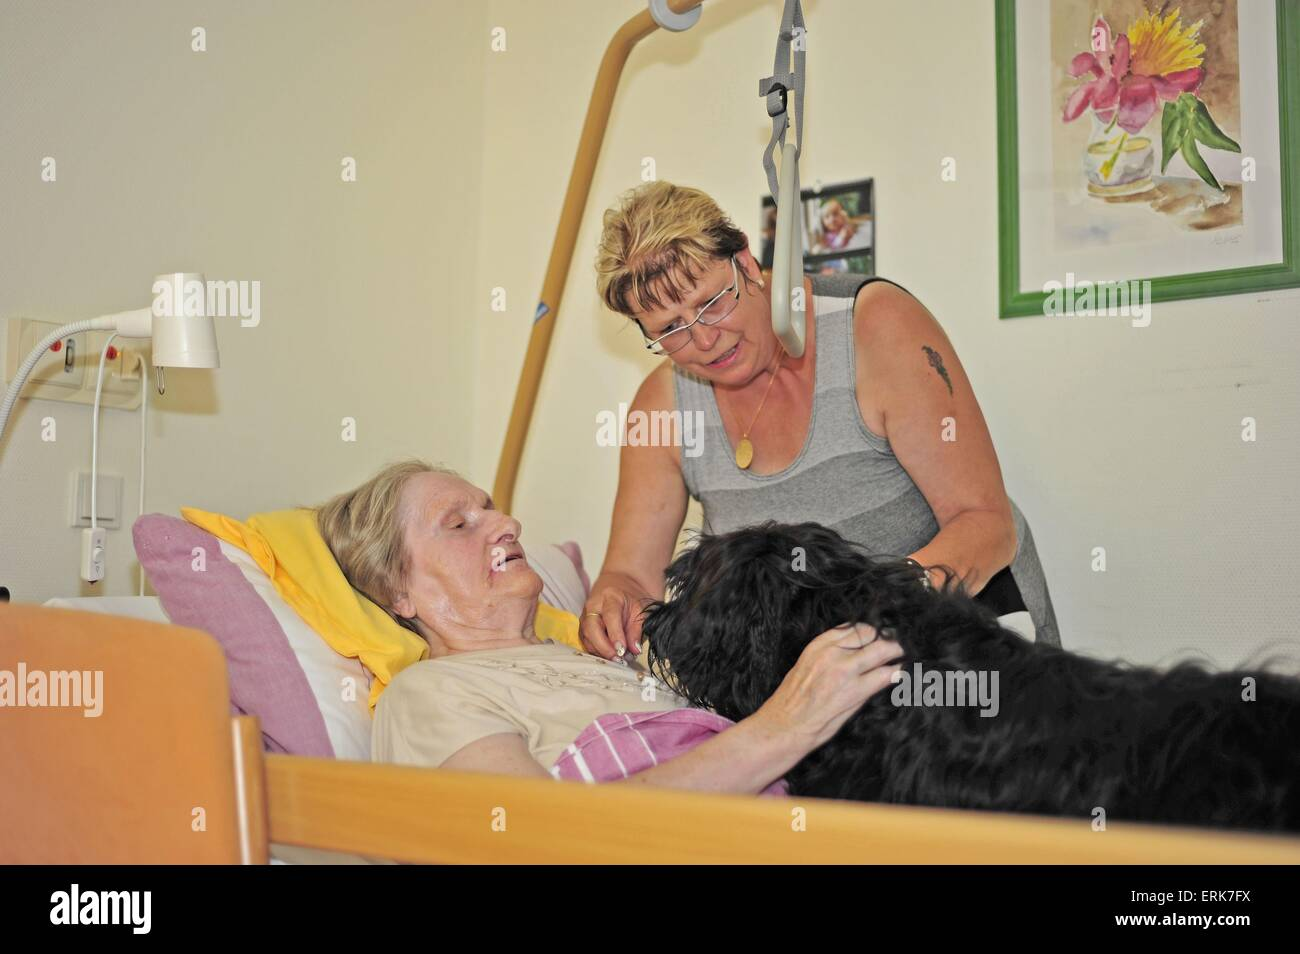 therapy dog at work - Stock Image